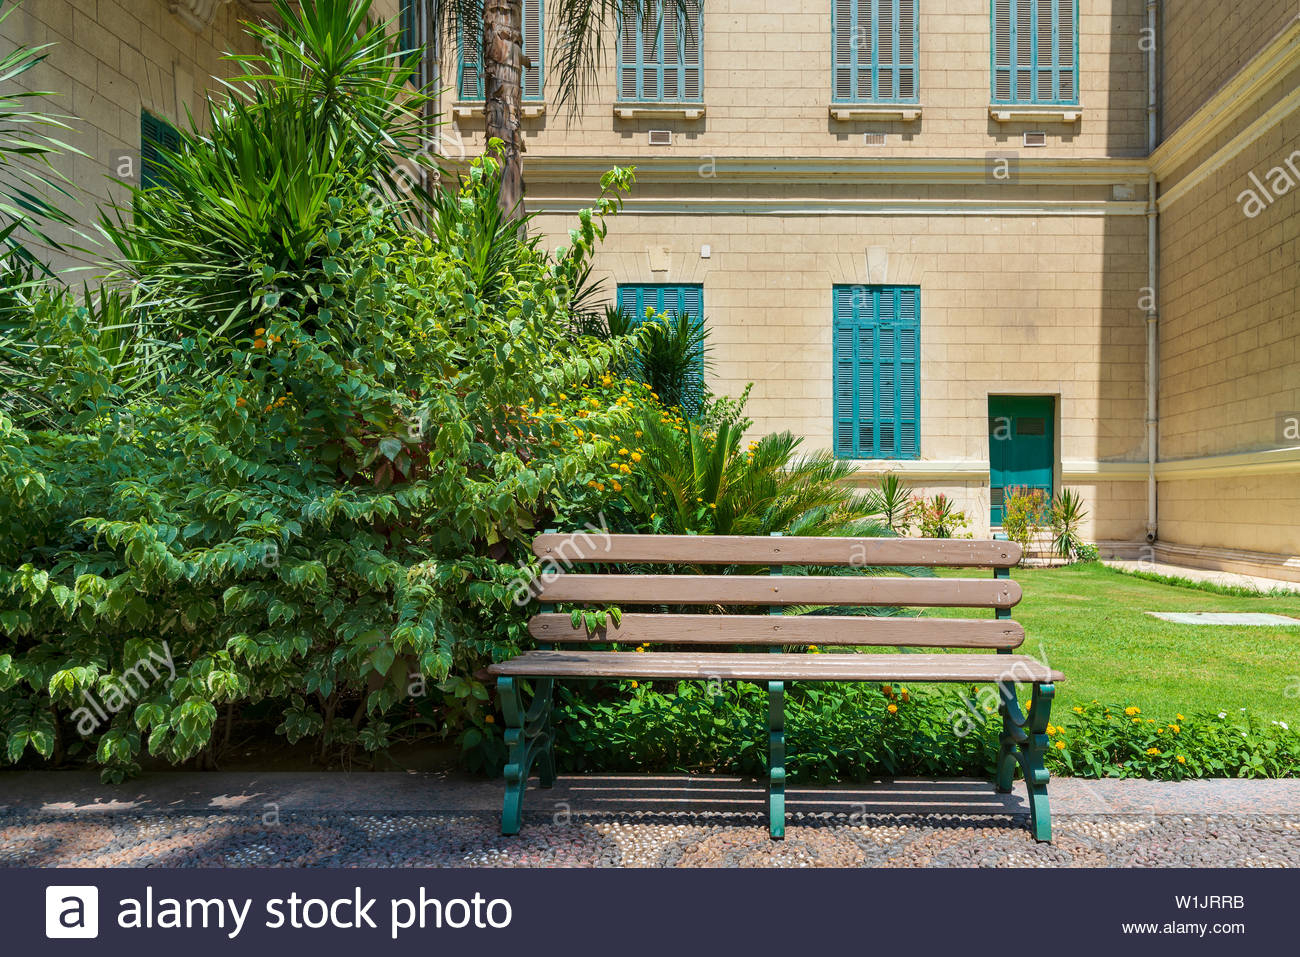 Page 2 – Public Garden Bench High Resolution Stock Within Strasburg Blossoming Decorative Iron Garden Benches (View 25 of 25)